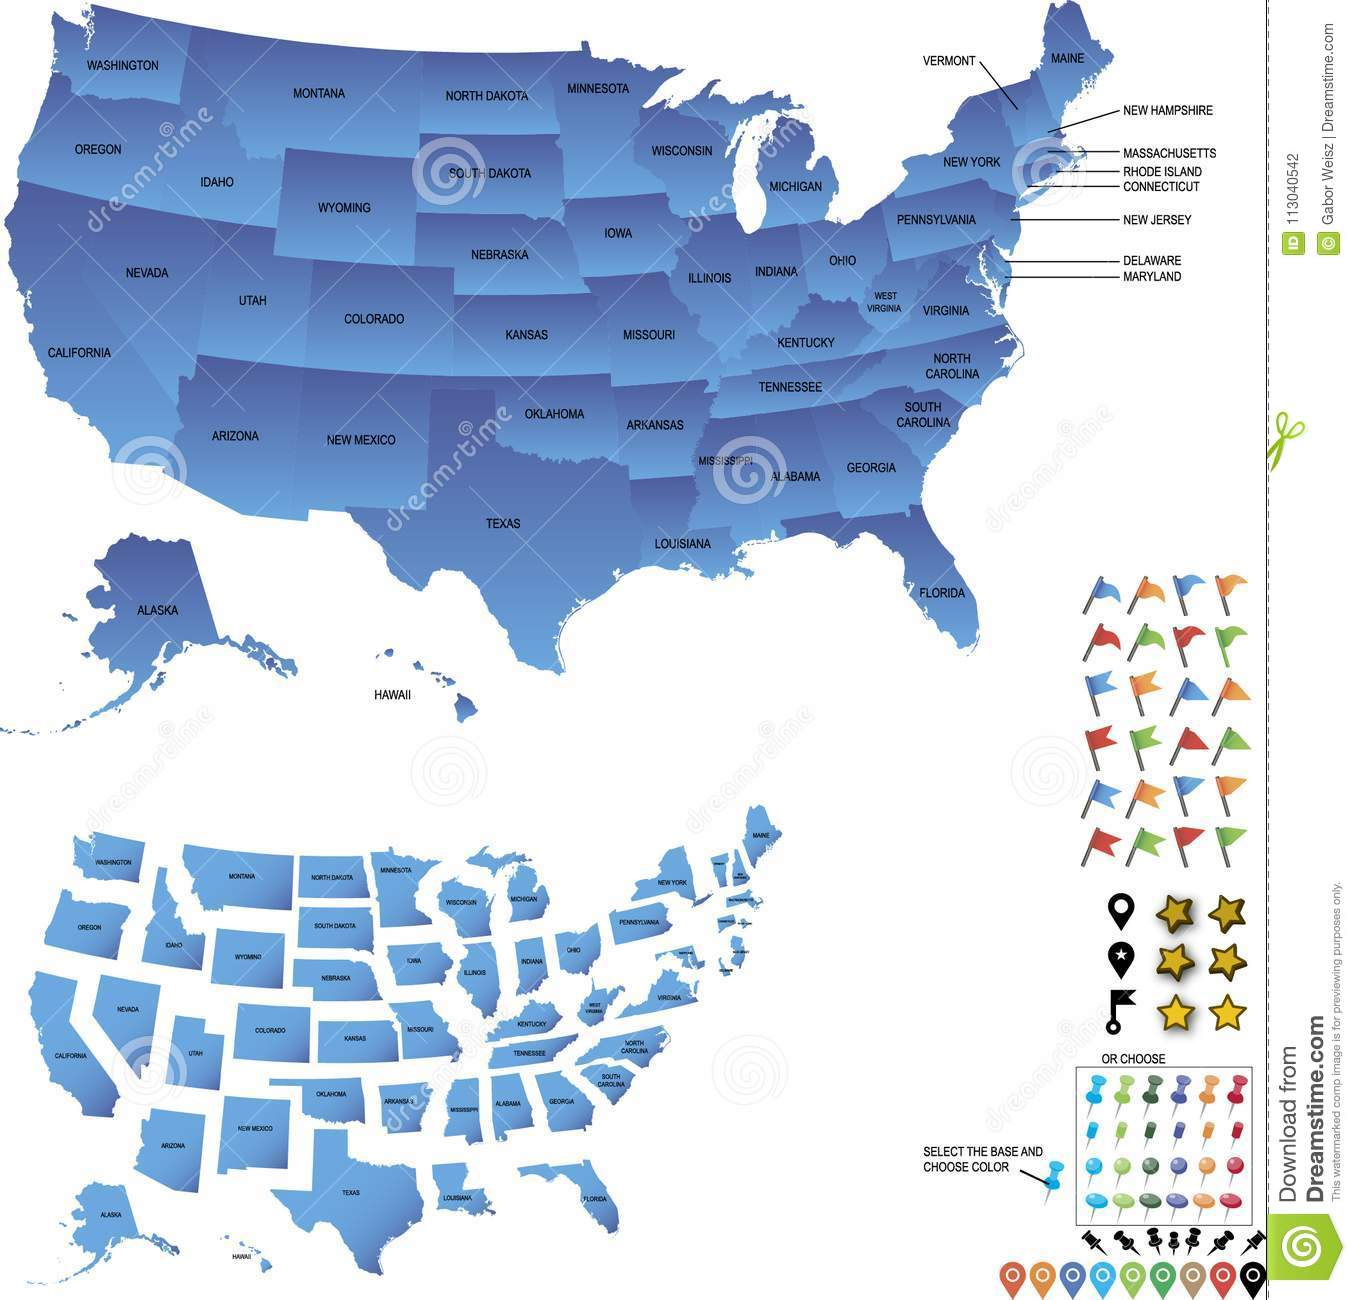 Map Of Usa With Pins.Usa Travel Map With States And Pins And Flags For Destinations Stock